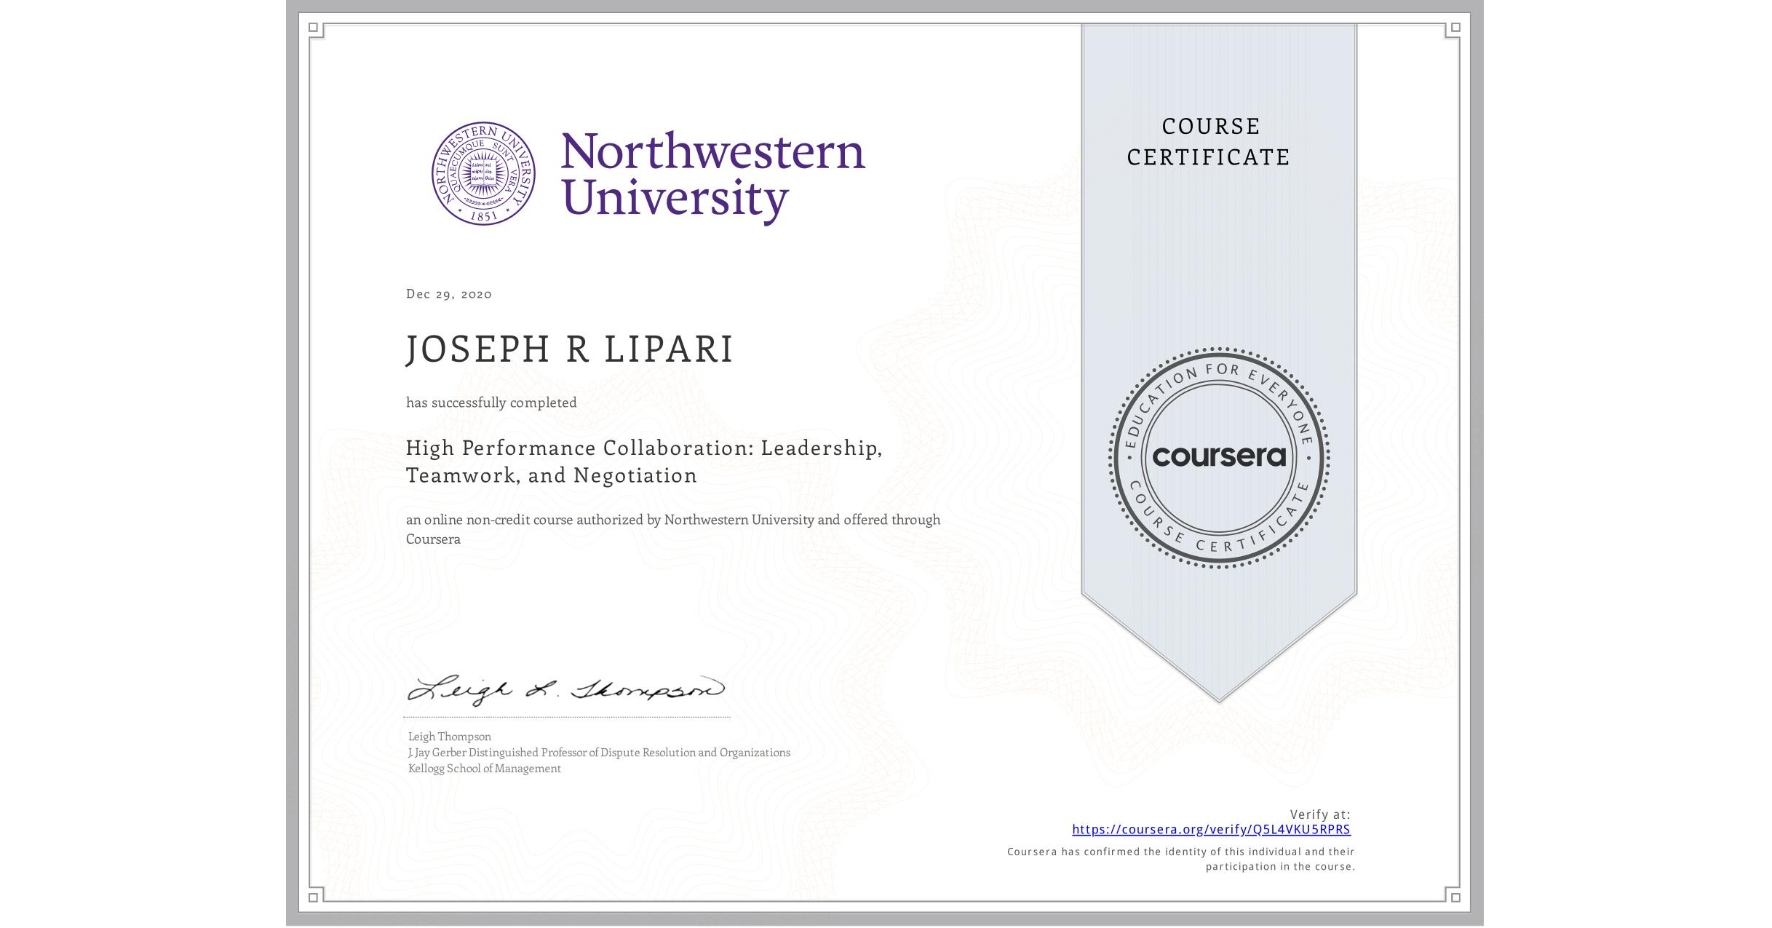 View certificate for JOSEPH R  LIPARI, High Performance Collaboration: Leadership, Teamwork, and Negotiation, an online non-credit course authorized by Northwestern University and offered through Coursera